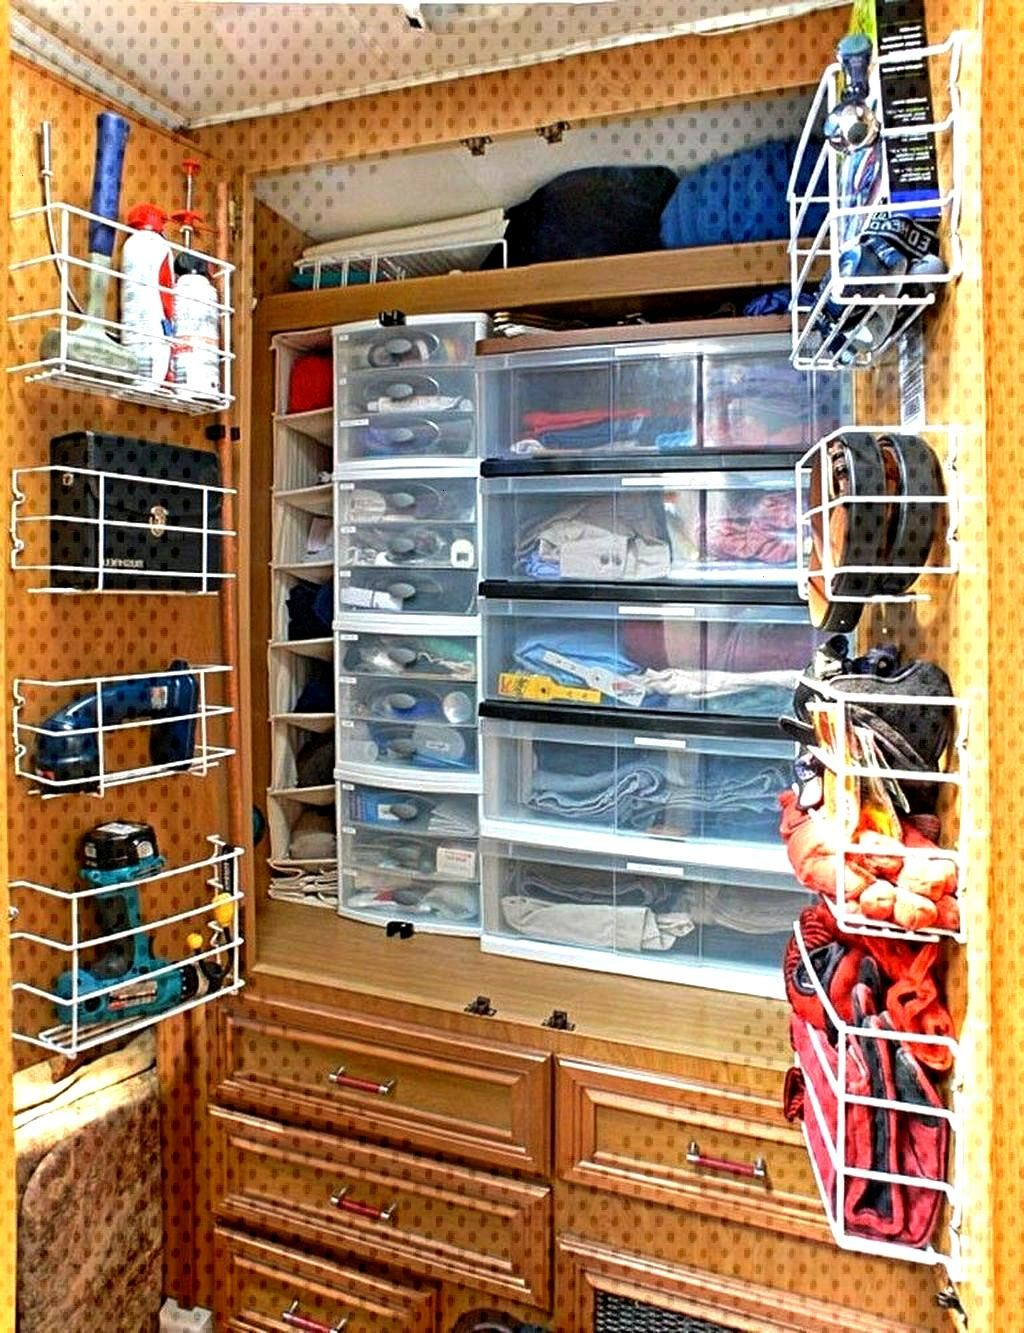 43 Impressive Full Time Rv Living Tips Tricks For Camper Organization Ideas - - Gorgeous 43 Impre